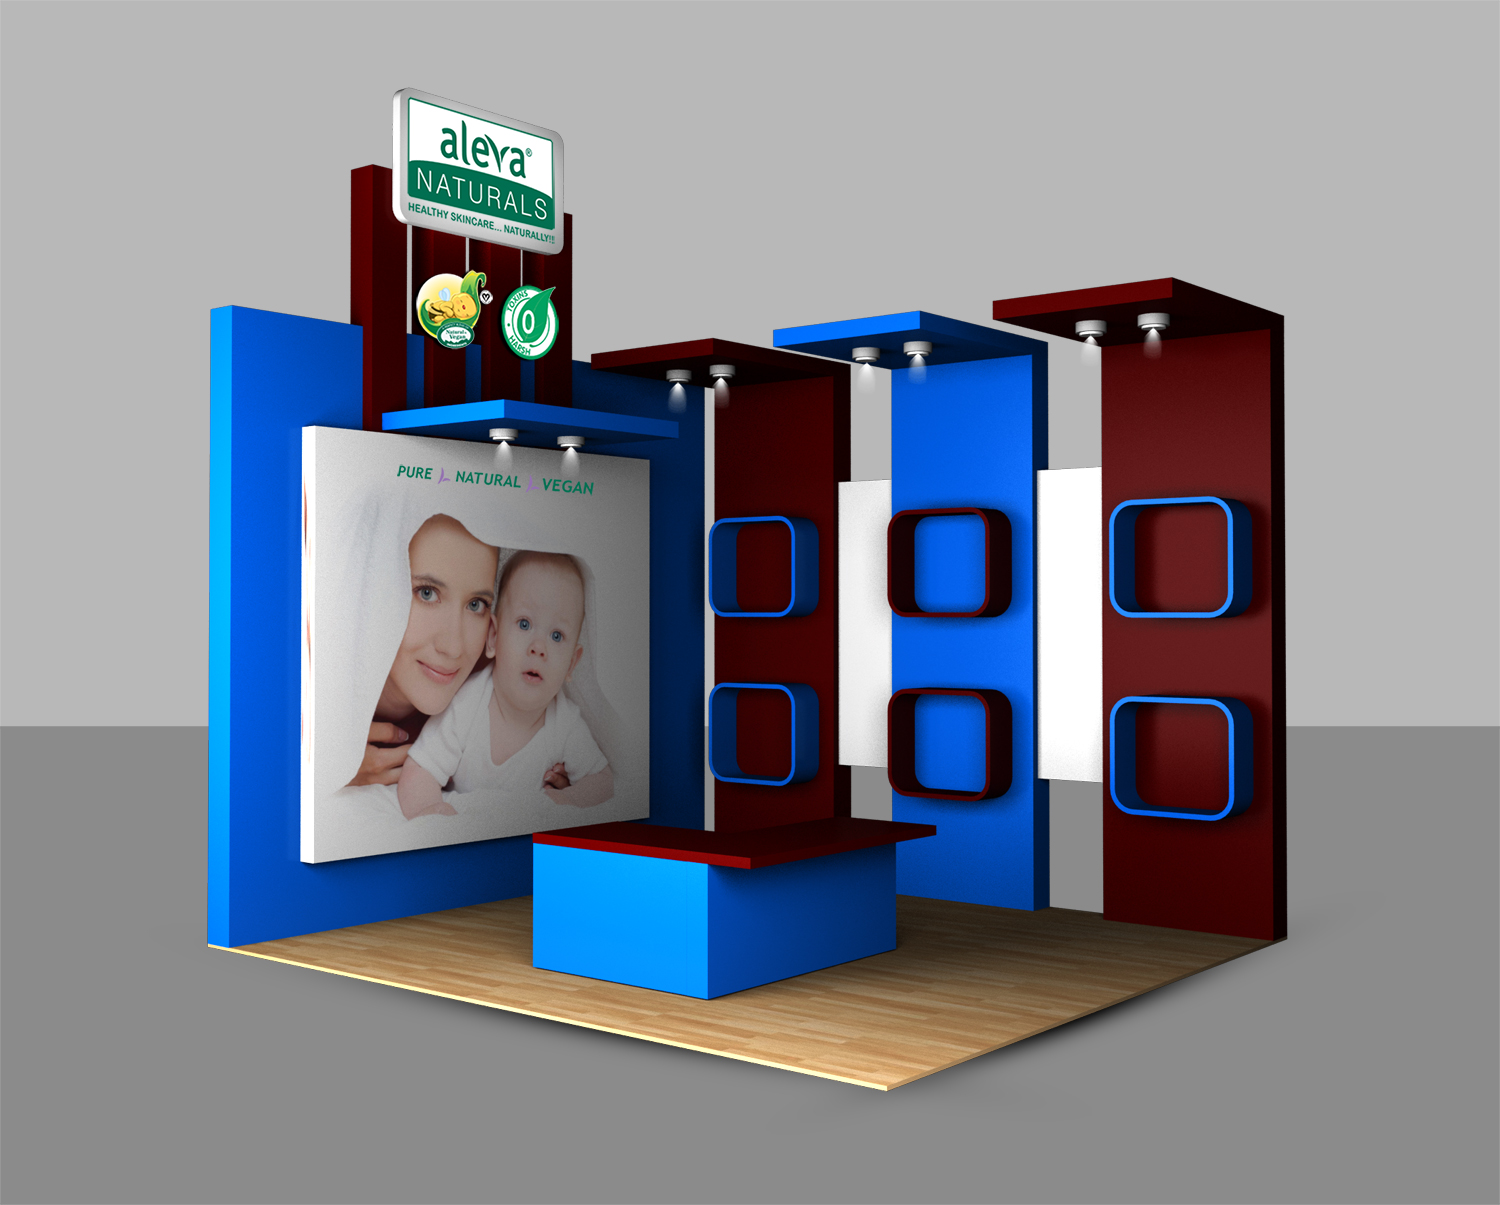 Modern Exhibition Booth Design : Elegant modern baby care trade show booth design for a